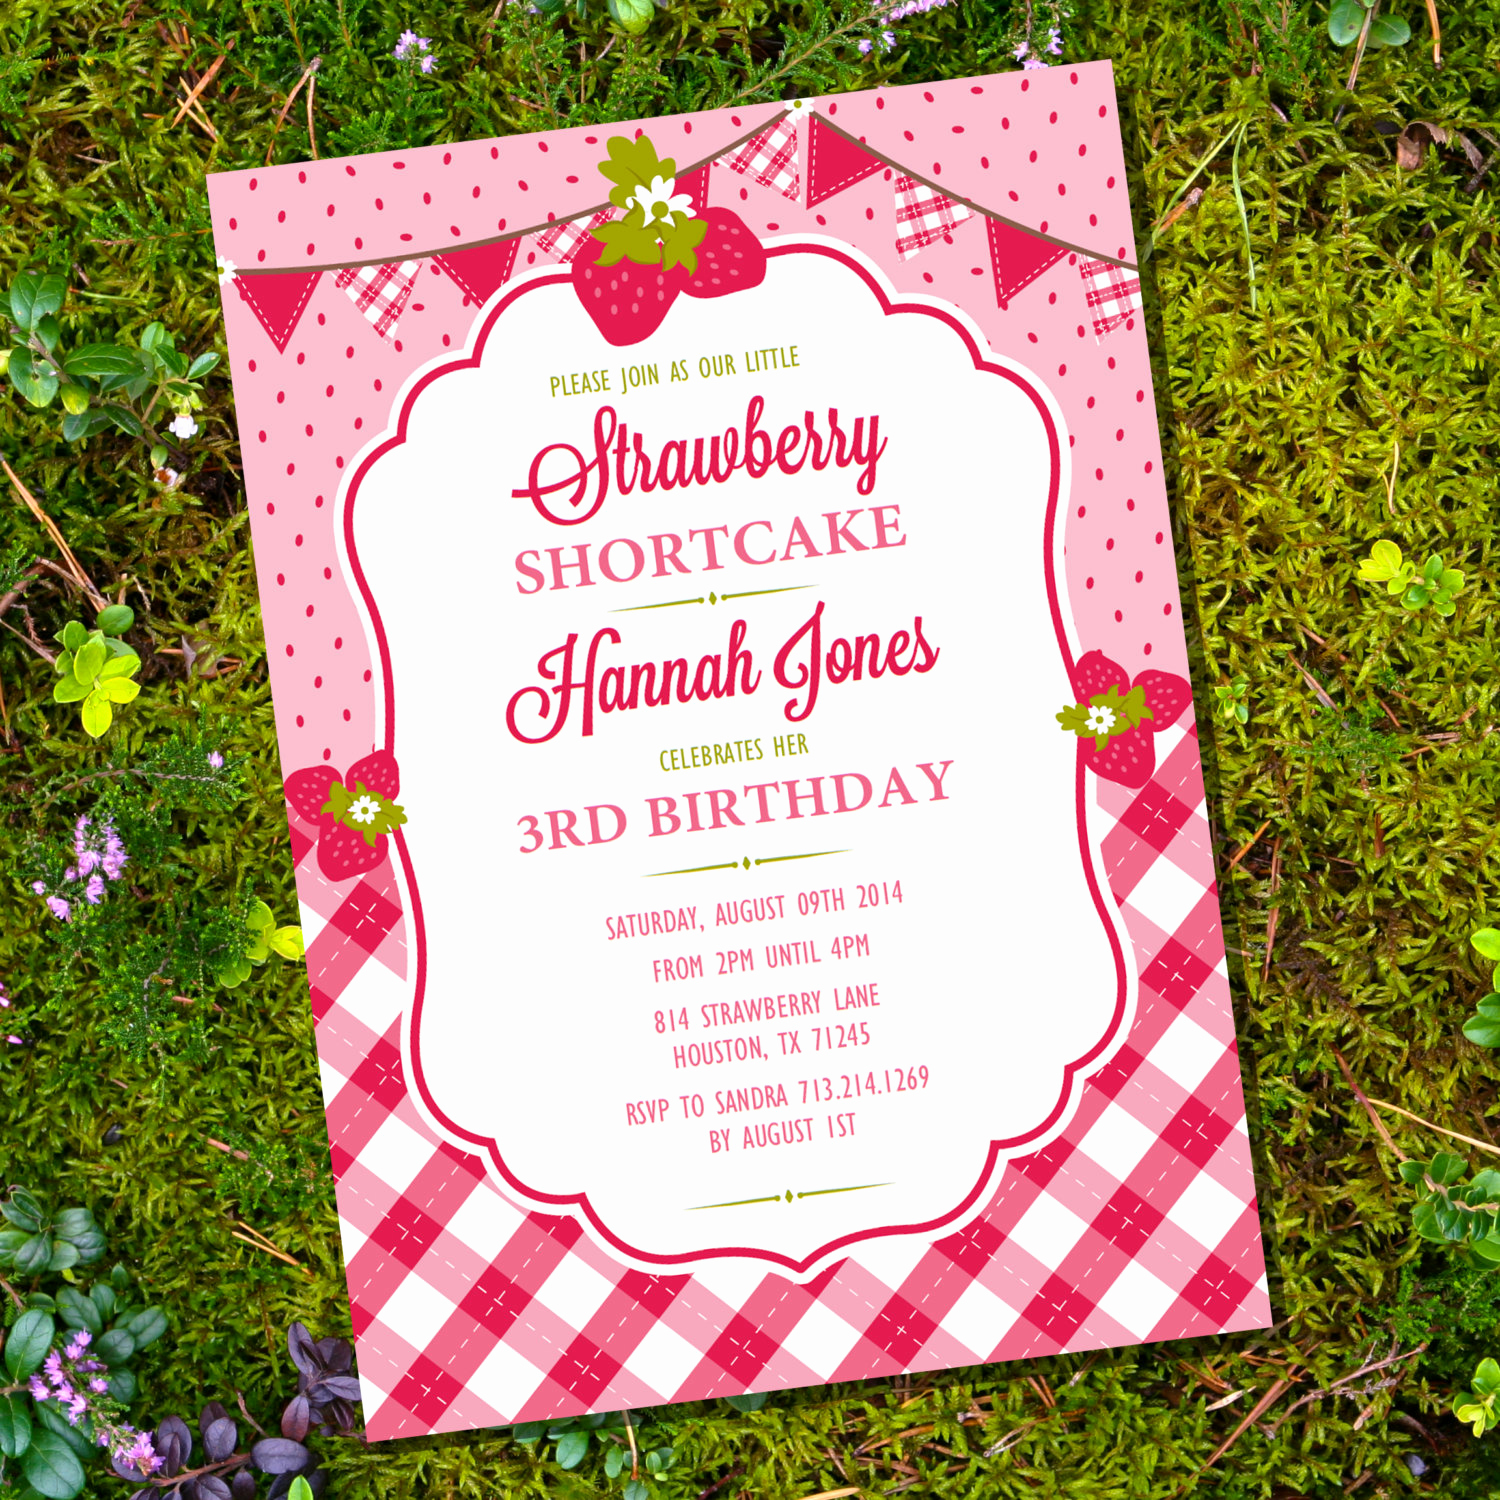 Strawberry Shortcake Invitation Template Free Fresh Strawberry Shortcake Party Invitation for A Girl Instant